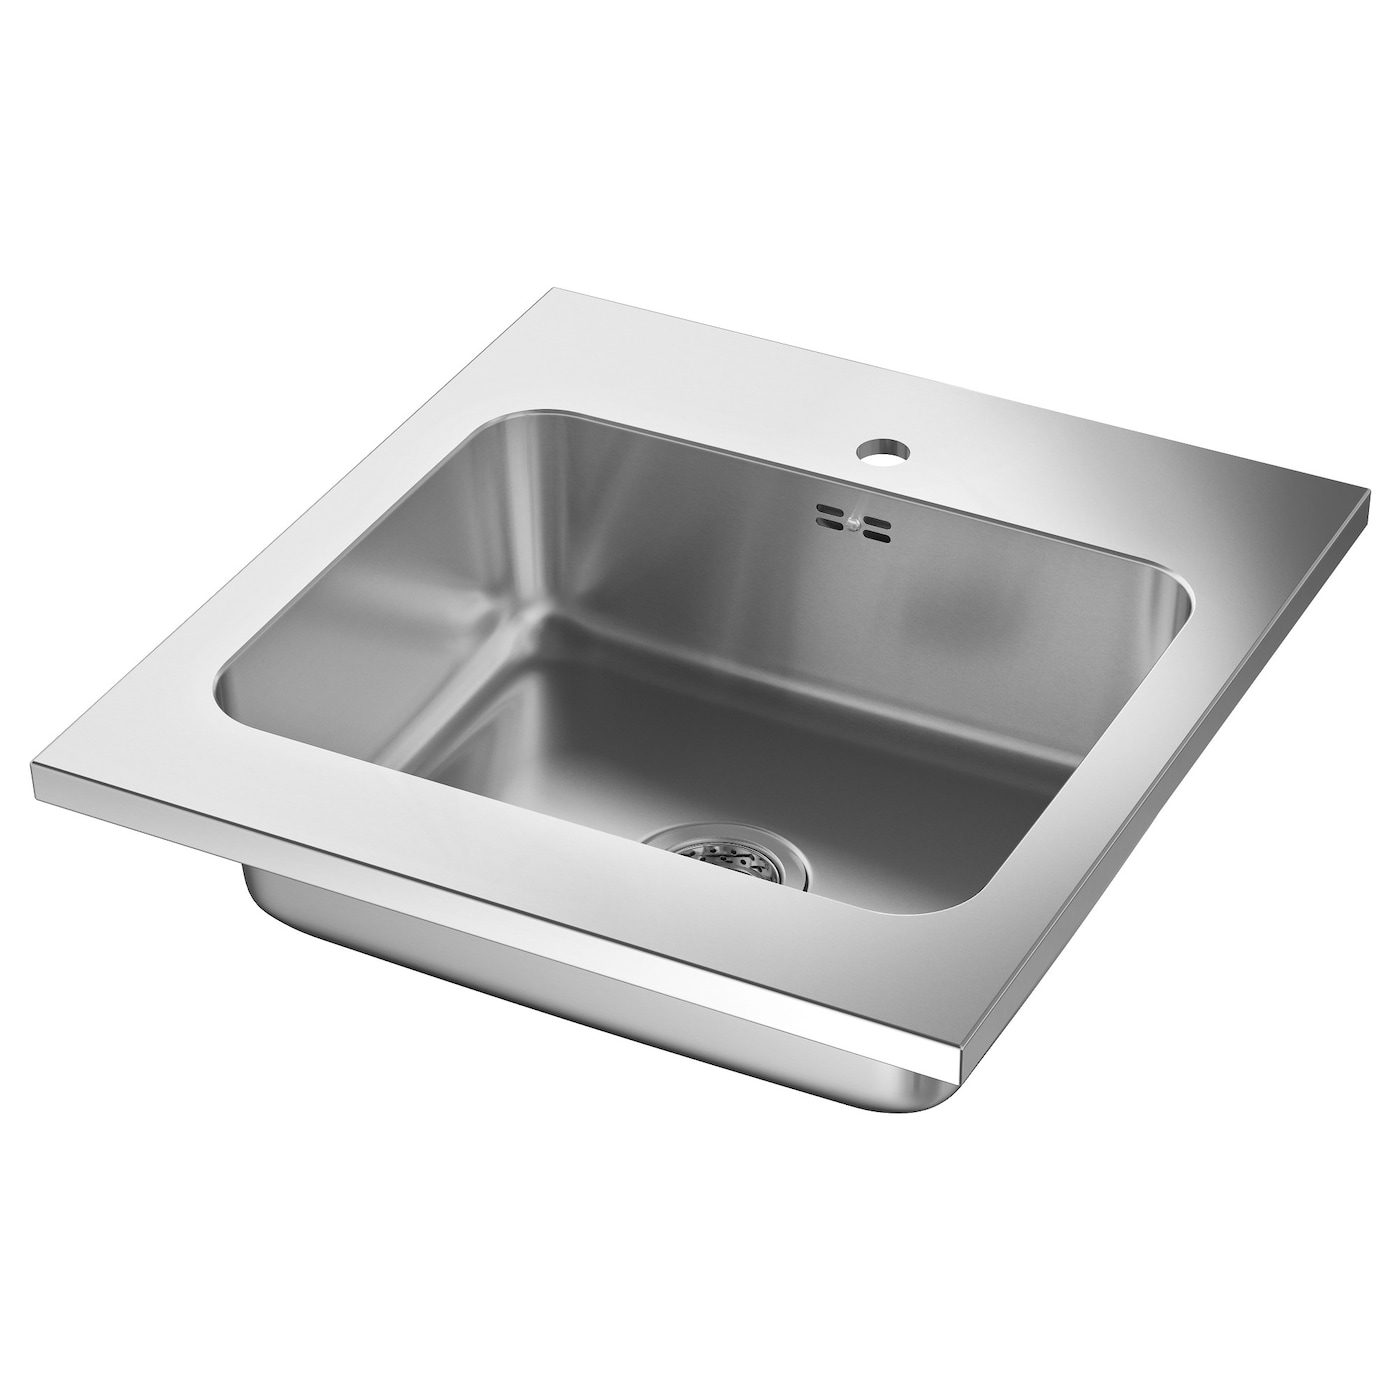 Kitchen Sinks & Taps - IKEA